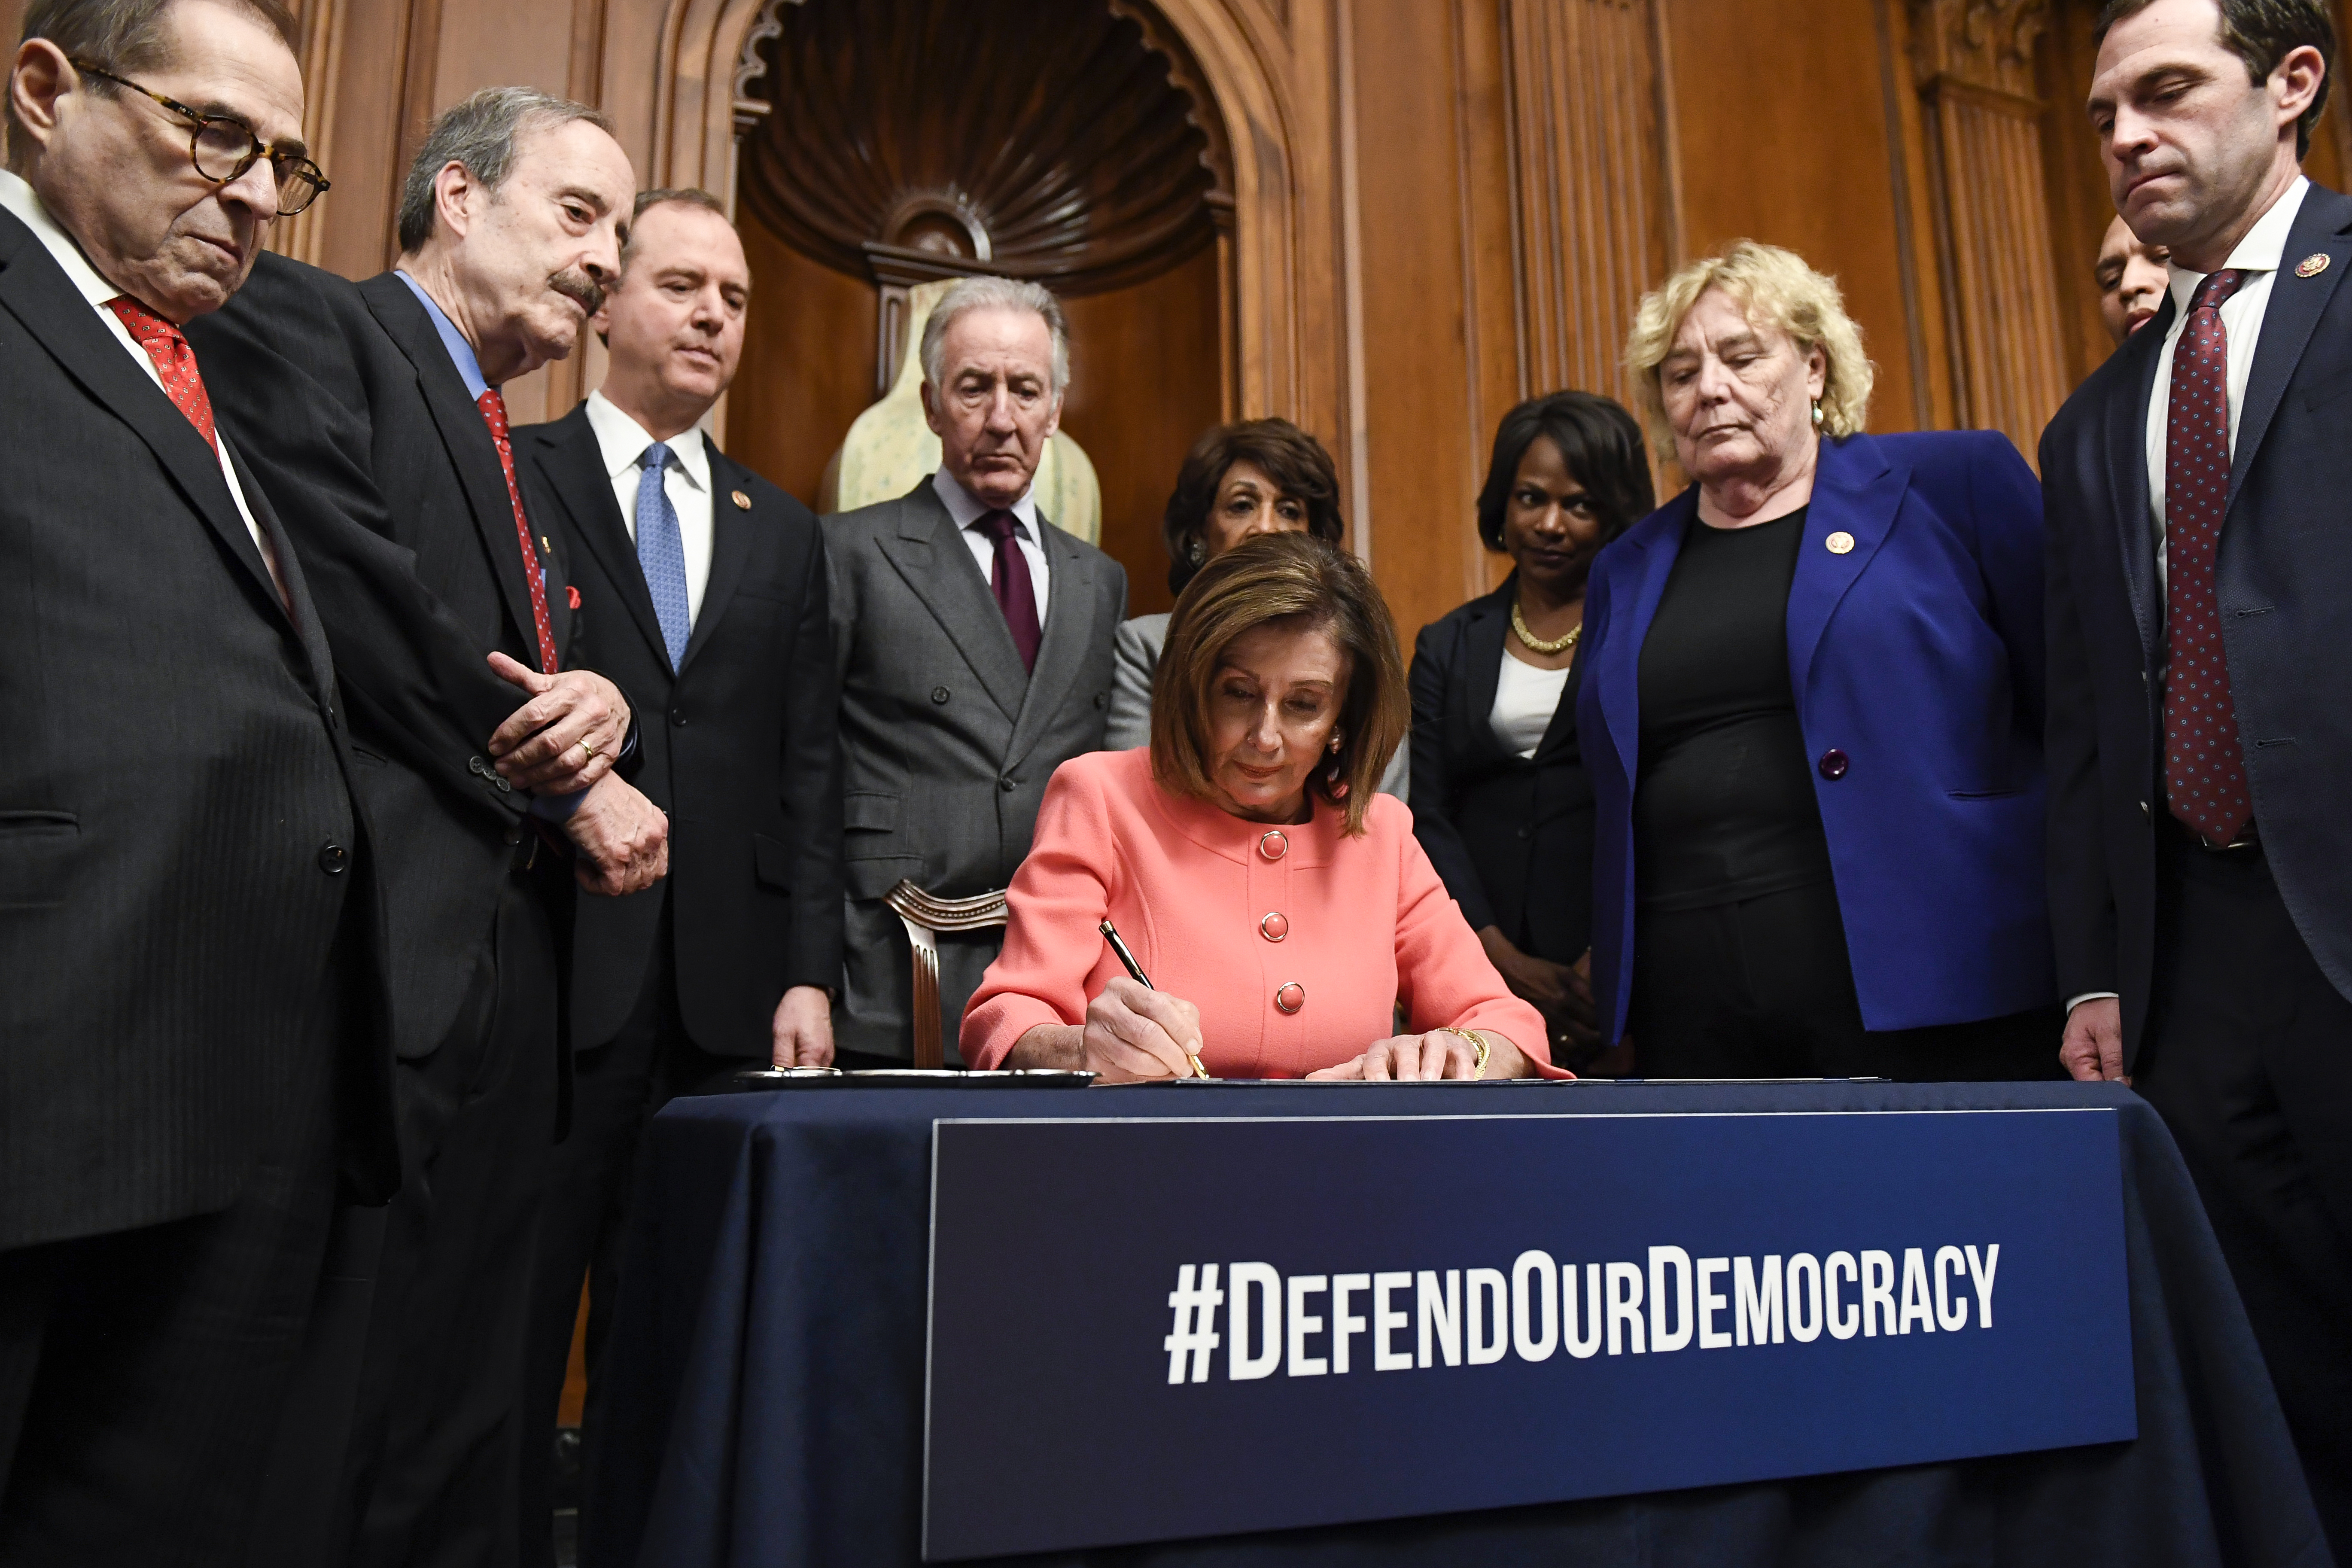 UNITED STATES - JANUARY 15: Speaker of the House Nancy Pelosi, D-Calif., signs the resolution to transmit the two articles of impeachment against President Donald Trump to the Senate for trial on Capitol Hill on Wednesday, Jan. 15, 2020. (Photo by Caroline Brehman/CQ Roll Call)